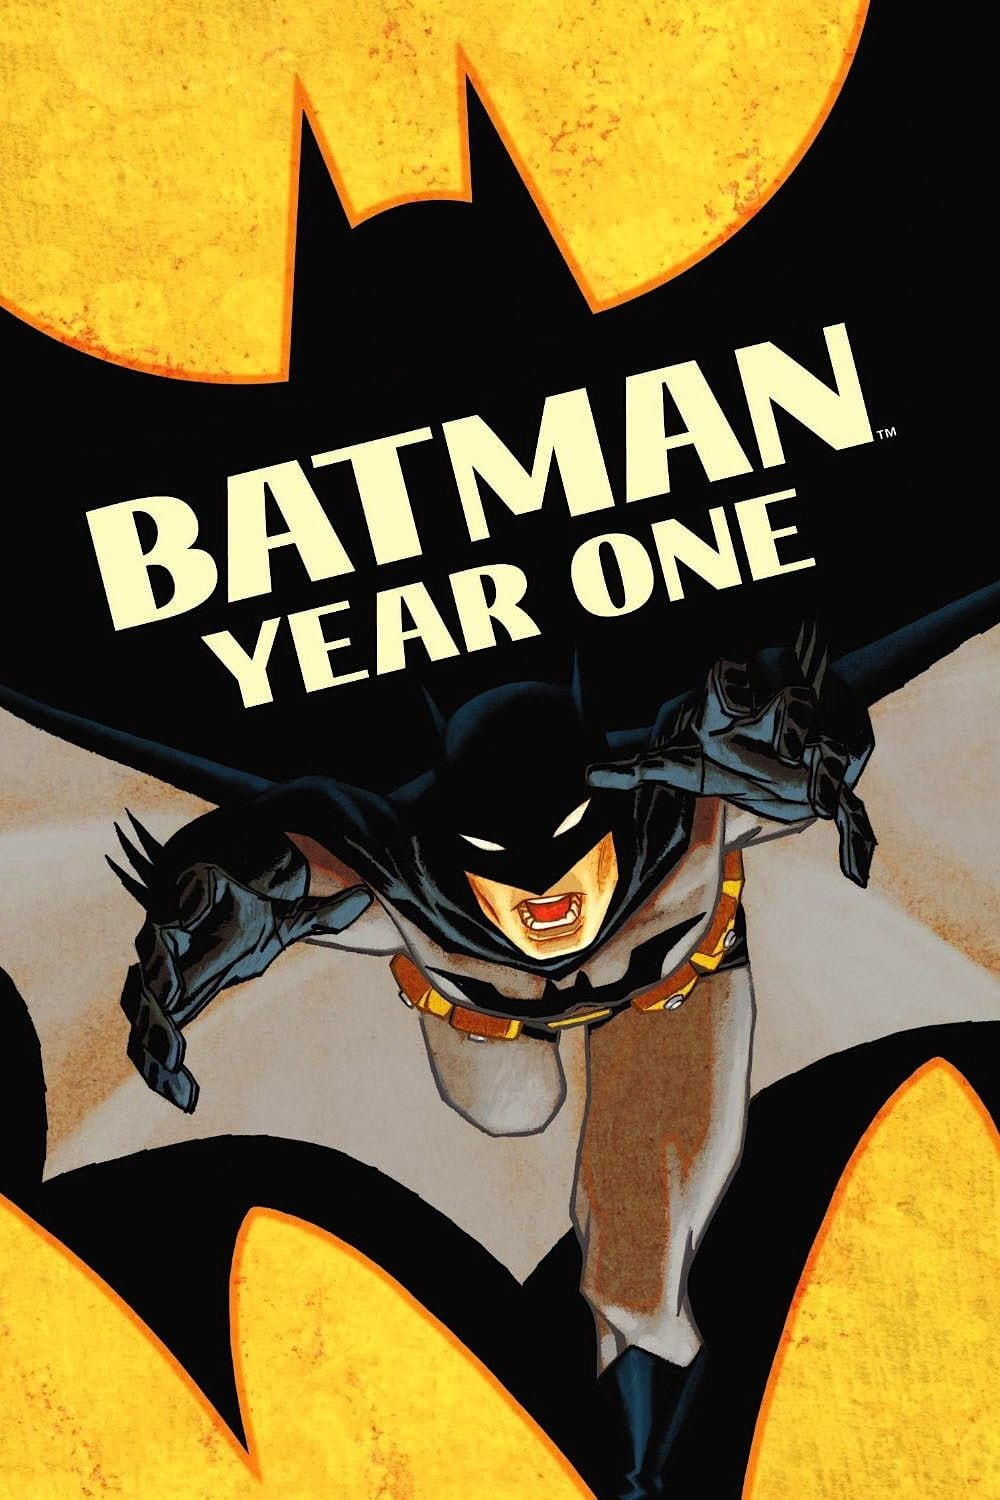 download or watch Batman Year One full movie online free Openload